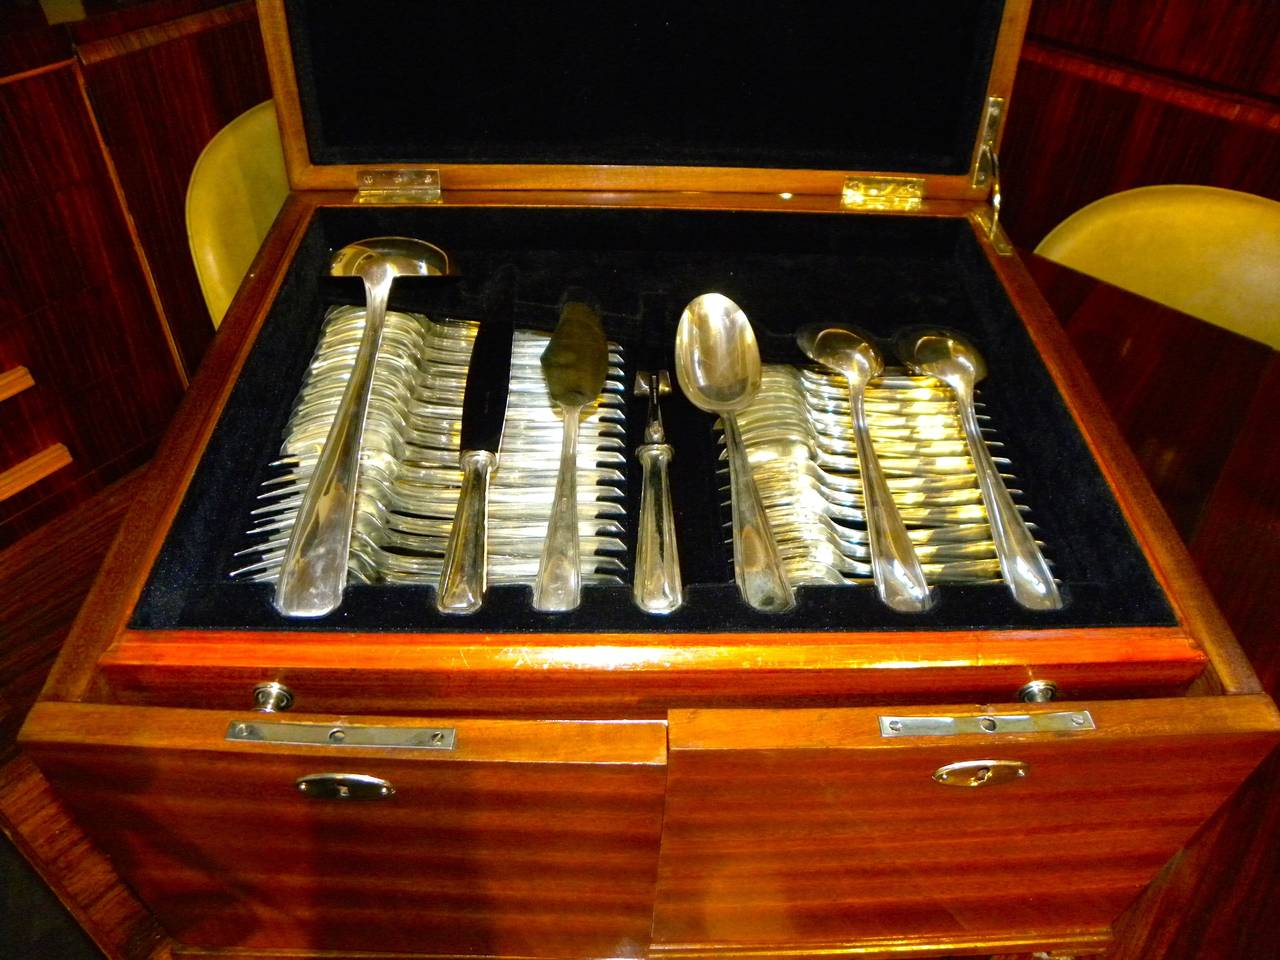 Classic Art Deco Complete Set of Silverware Cutlery in Fitted Box For Sale 2